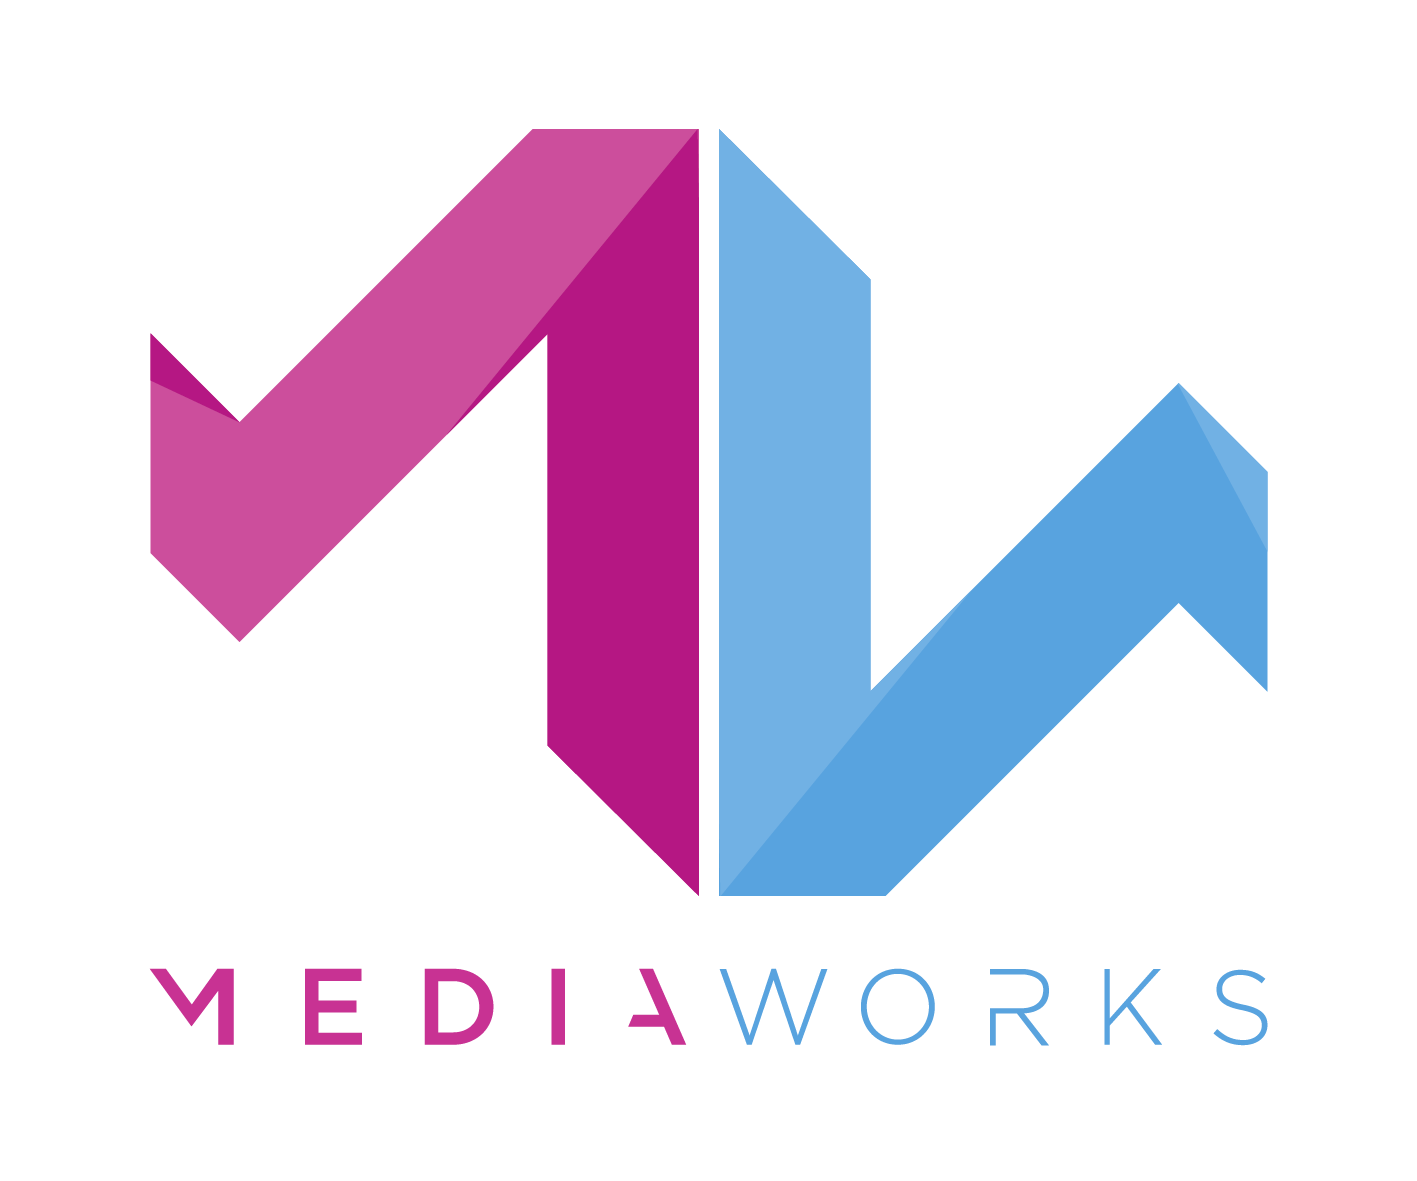 MediaWorks New Zealand - Wikipedia